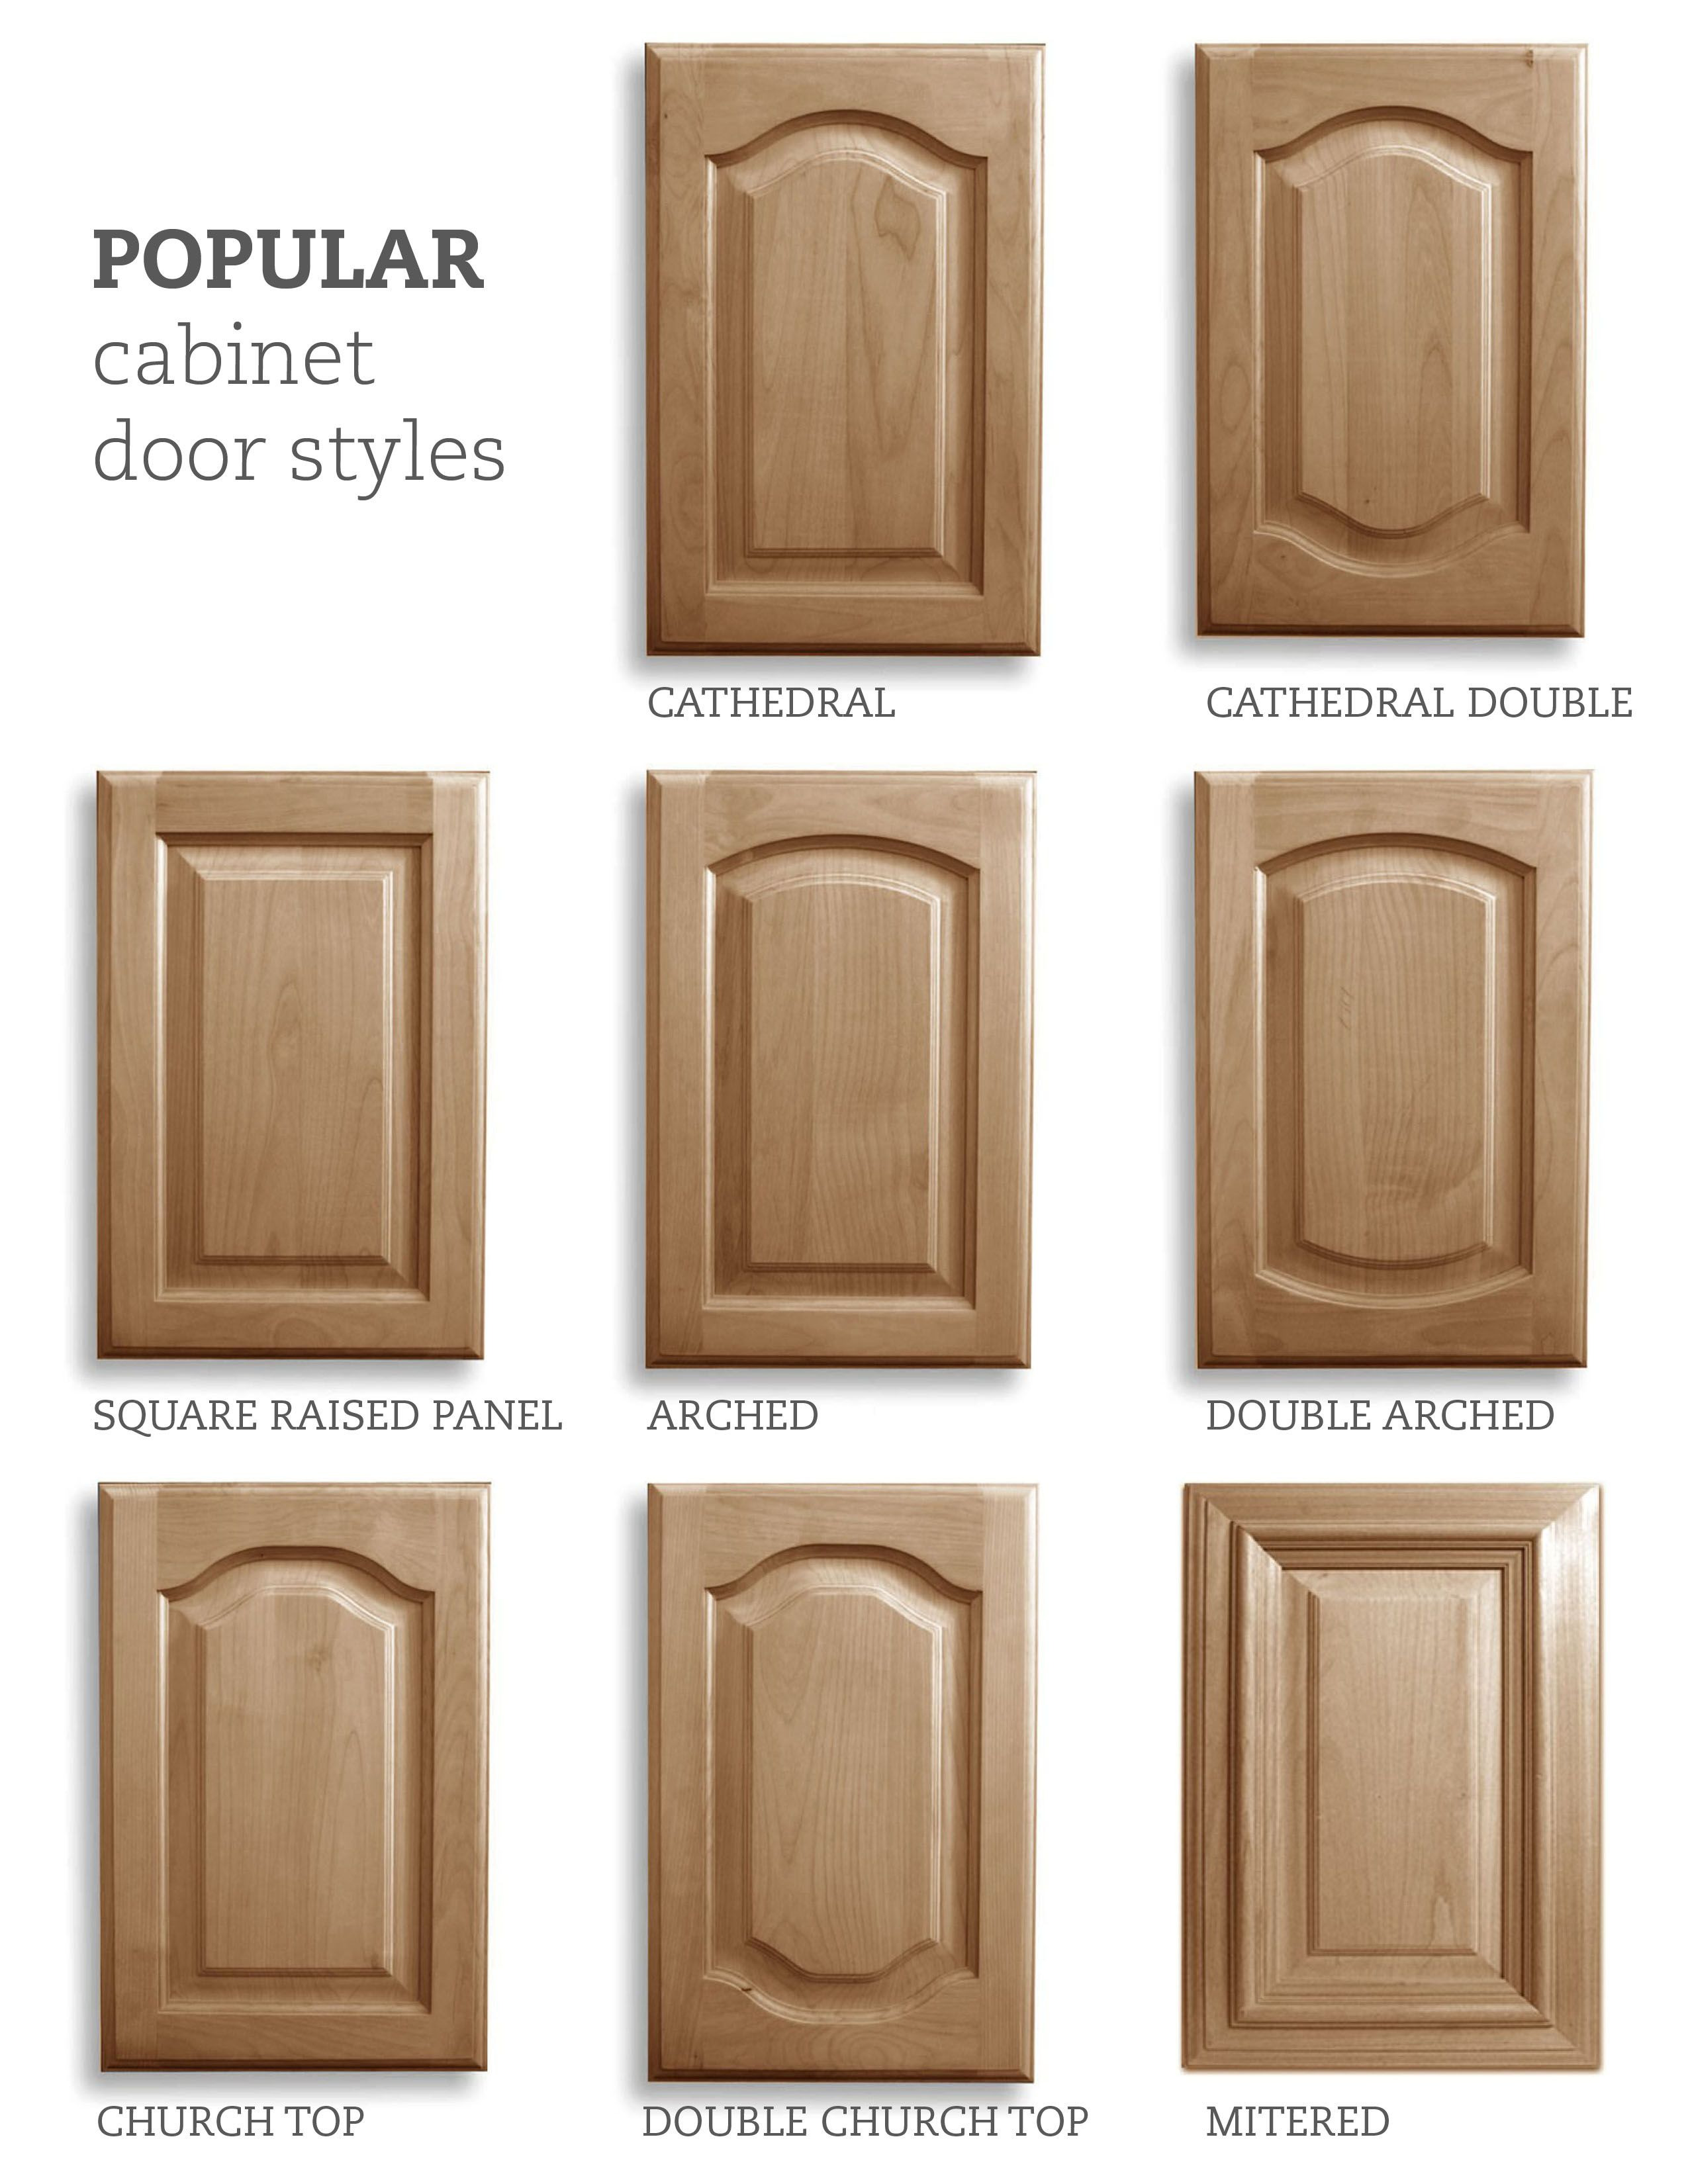 Kitchen Cabinets Doors Fresh Popular Cabinet Door Styles Cathedral Cathedral Double